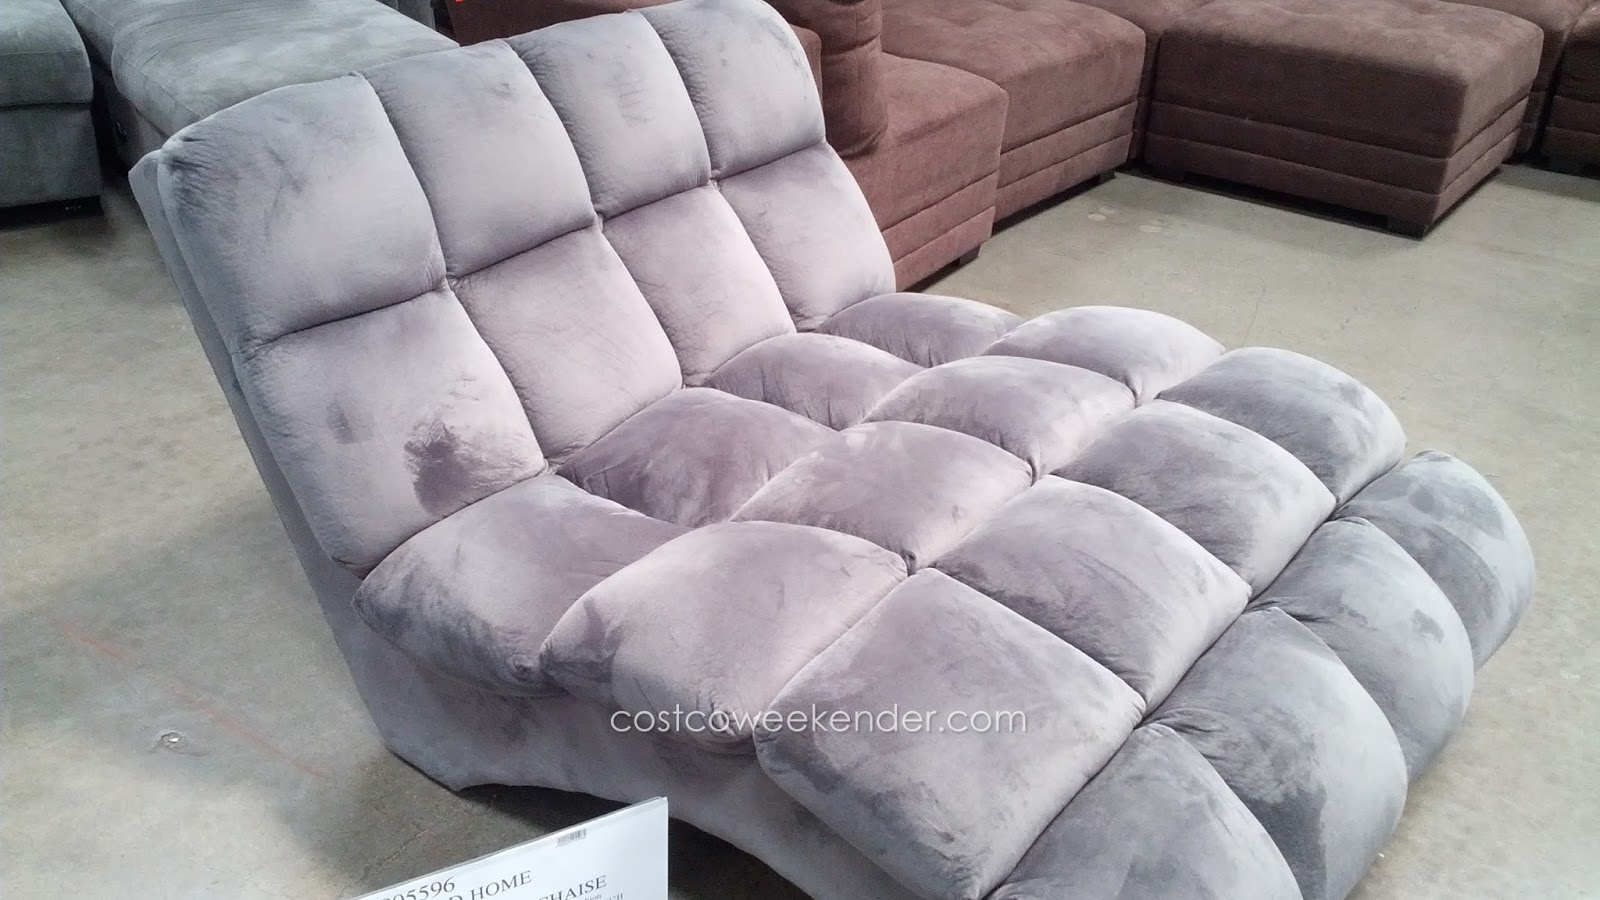 Emerald home boylston double chaise lounge costco weekender for Ava chaise lounge costco